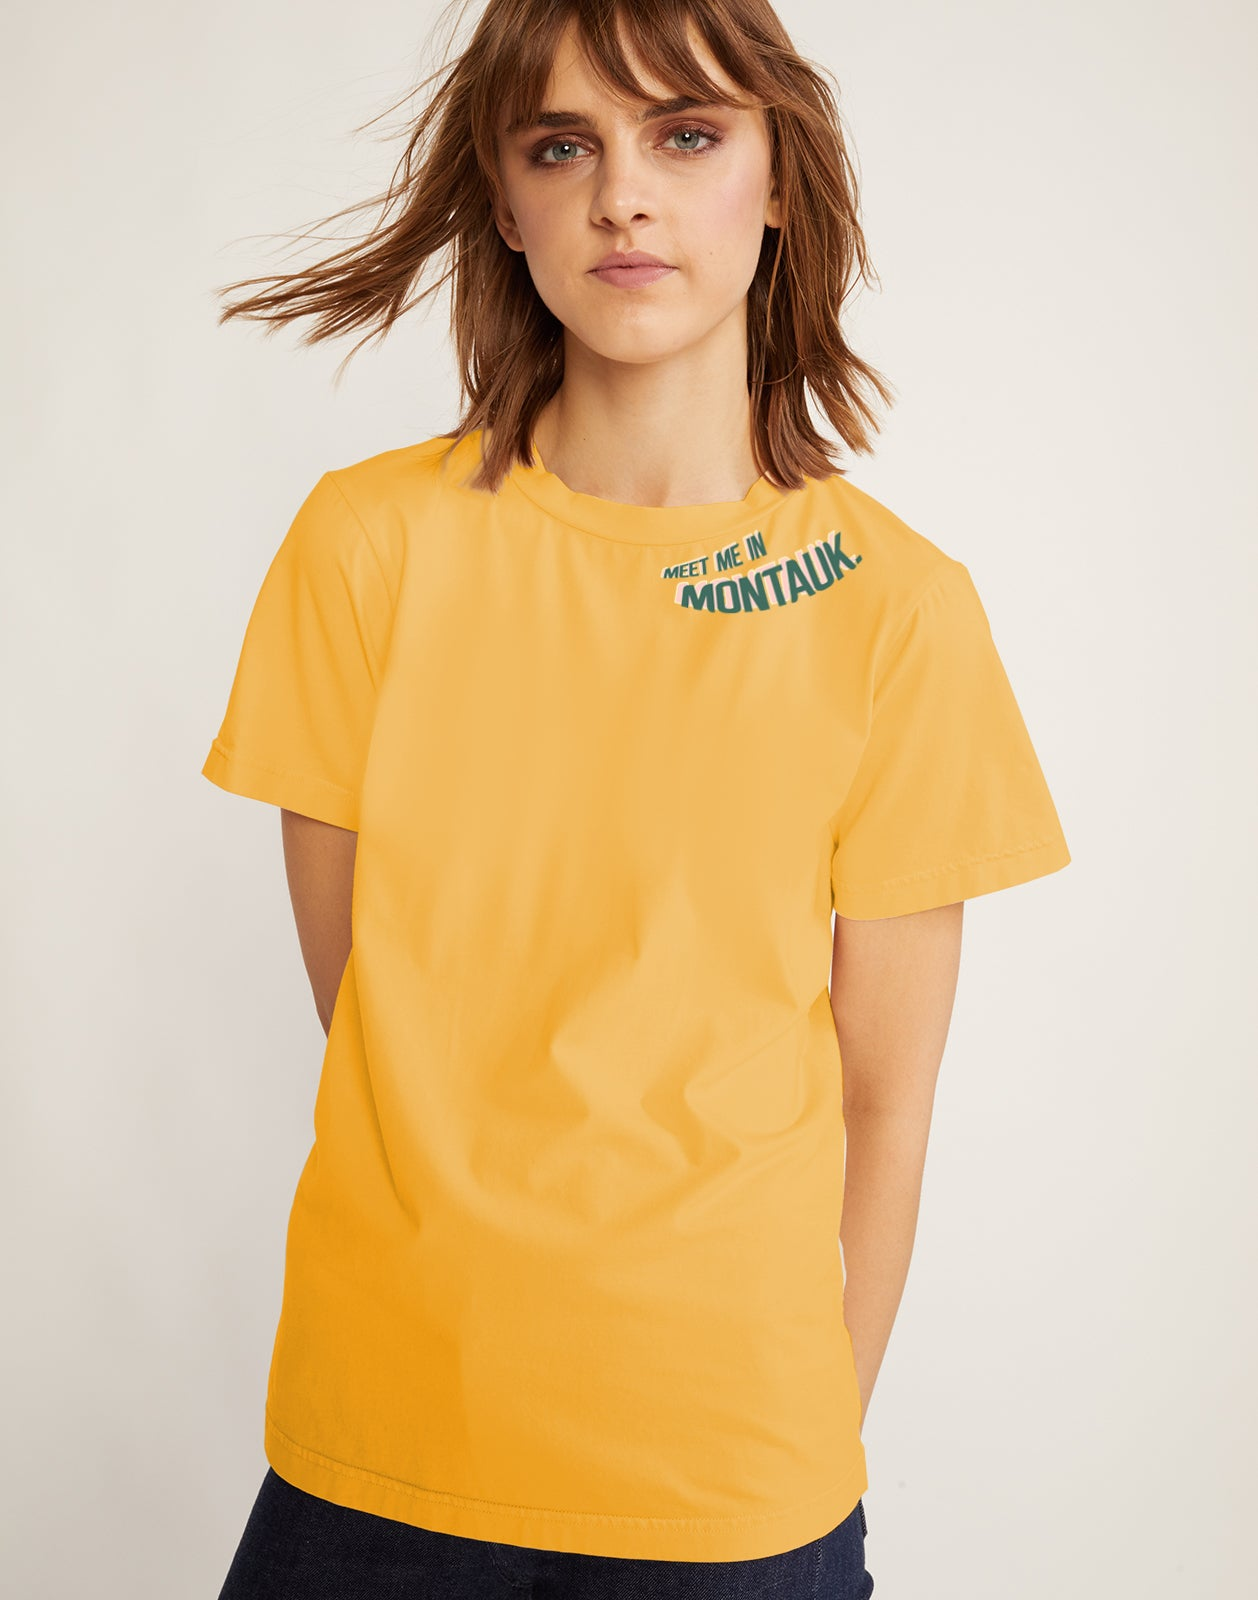 Meet me in Montauk Tee in yellow cotton with green printed lettering.